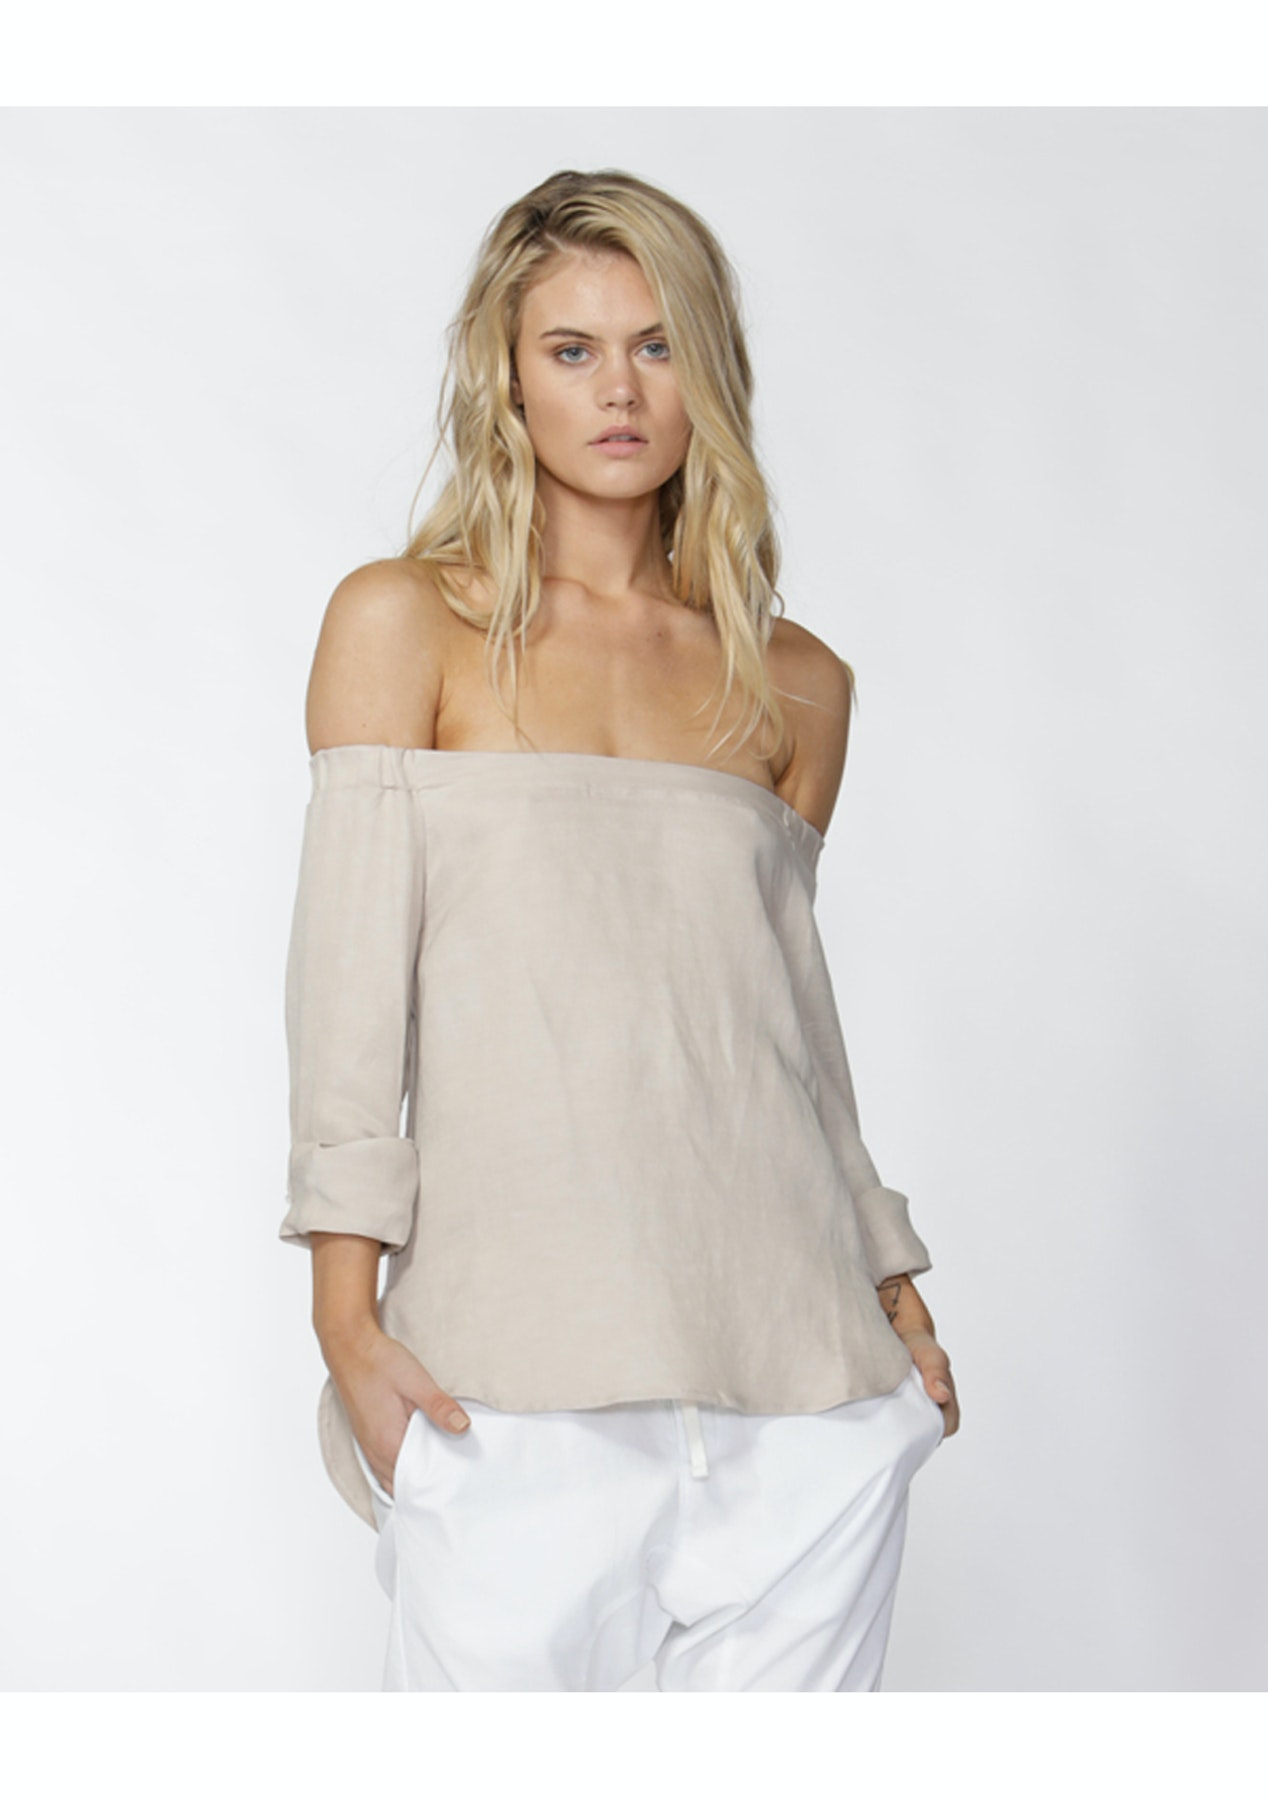 893ac12cacdb00 Fate - Etenia Off Shoulder Blouse - Sand - Free Shipping Price Drop Betty  Basics & Sass - Onceit